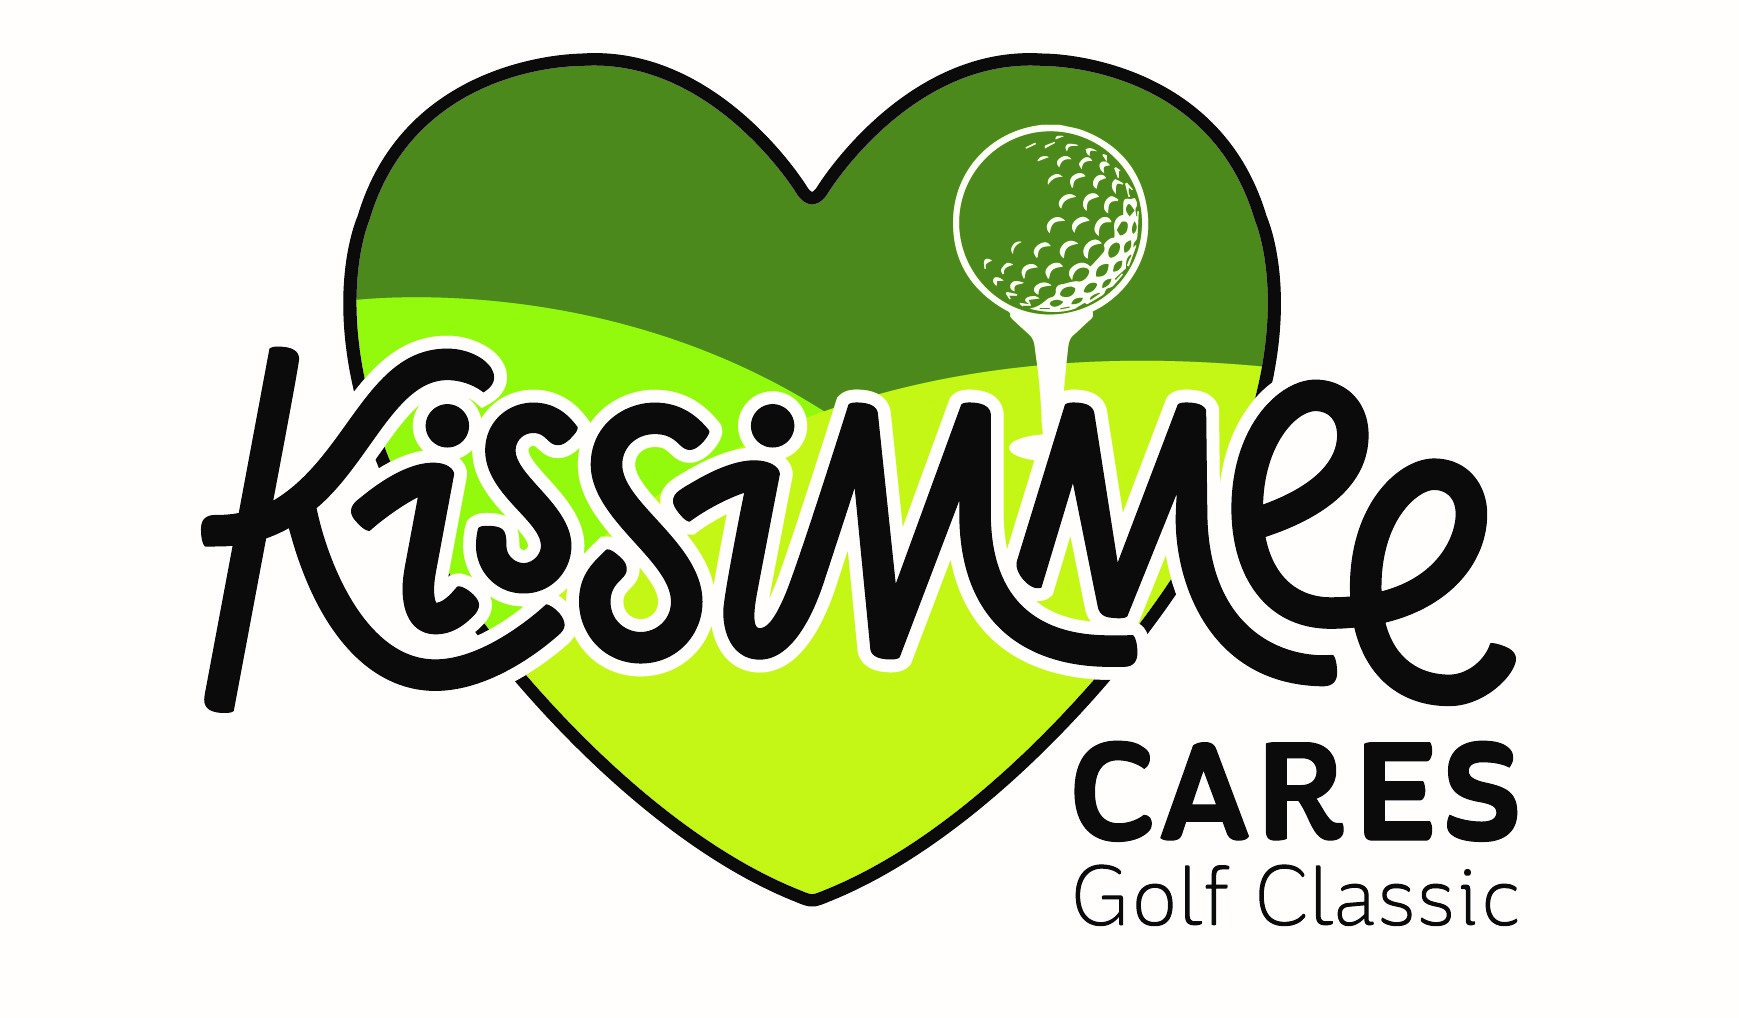 Kissimmee Cares Golf Classic Logo